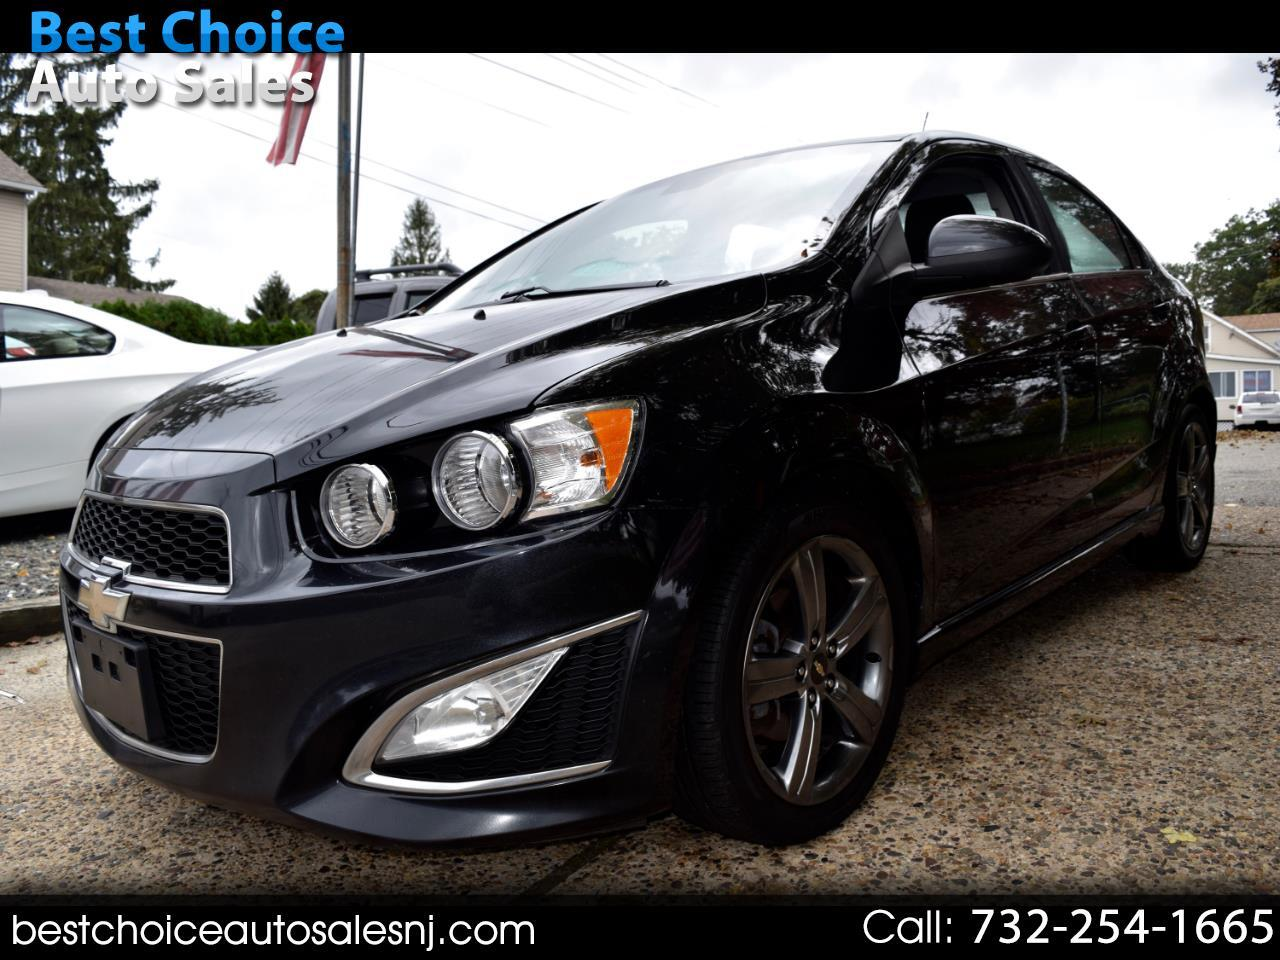 Chevrolet Sonic 4dr Sdn Auto RS 2014